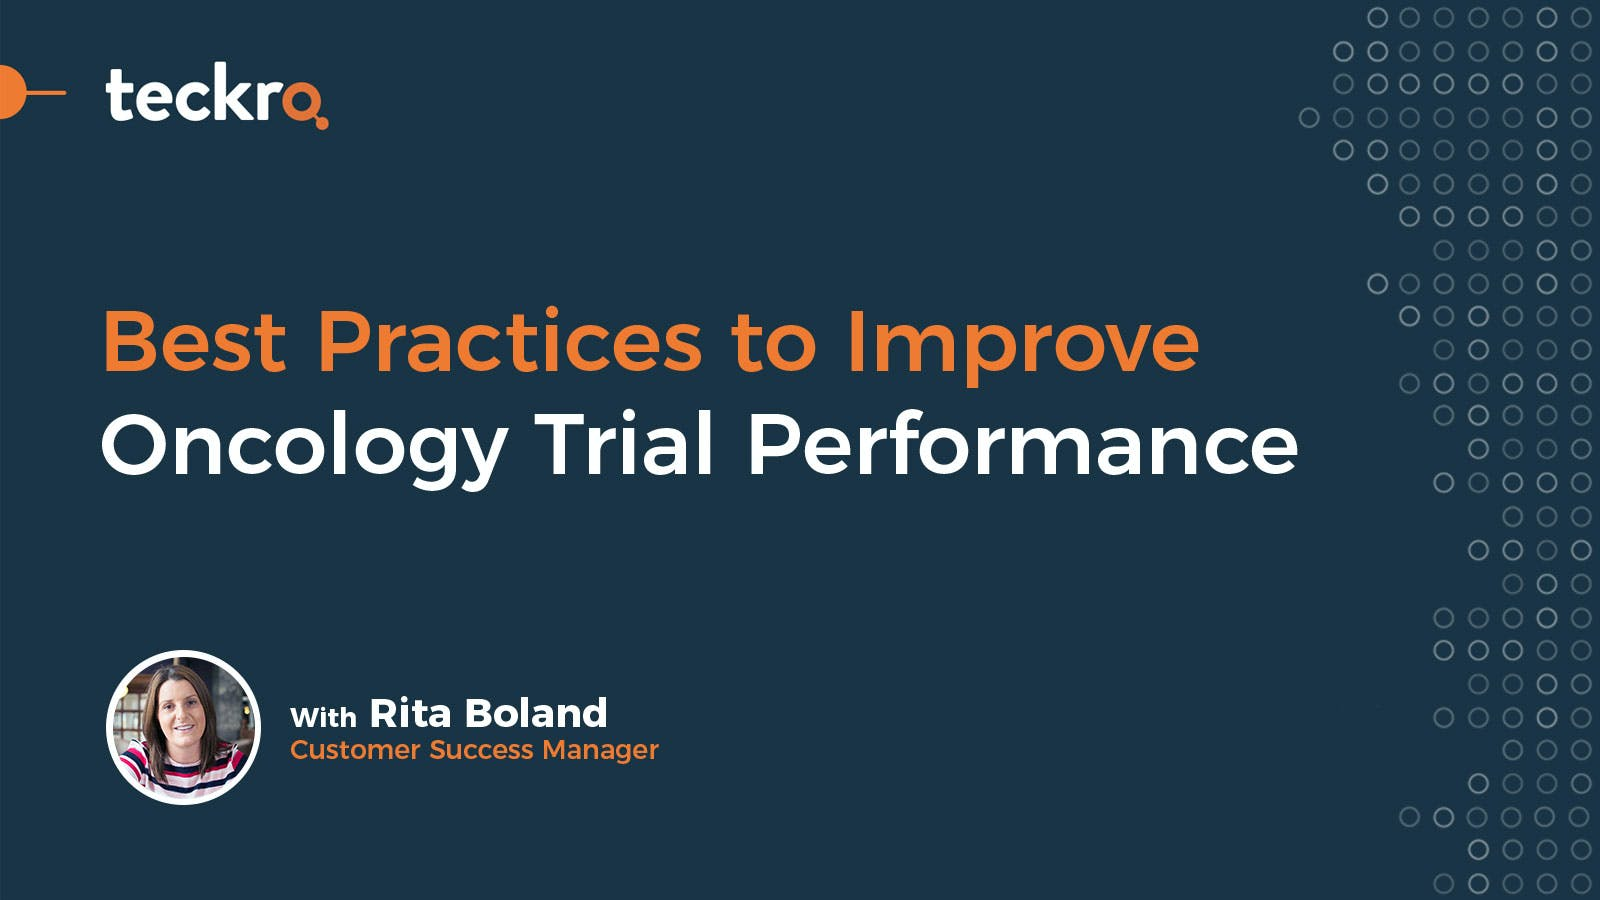 Best Practices to Improve Oncology Trial Performance